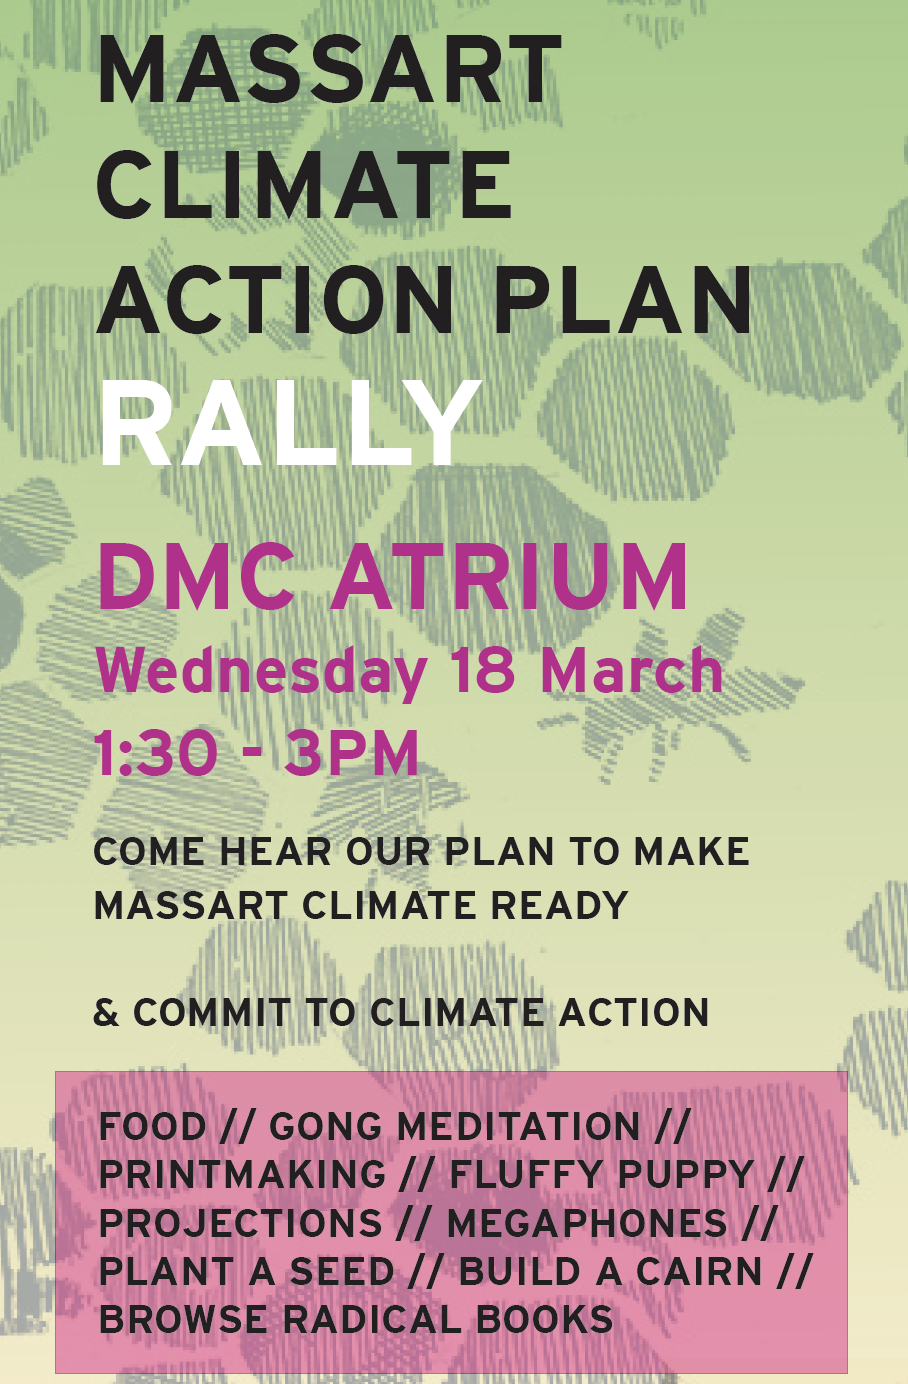 climate action plan rally poster